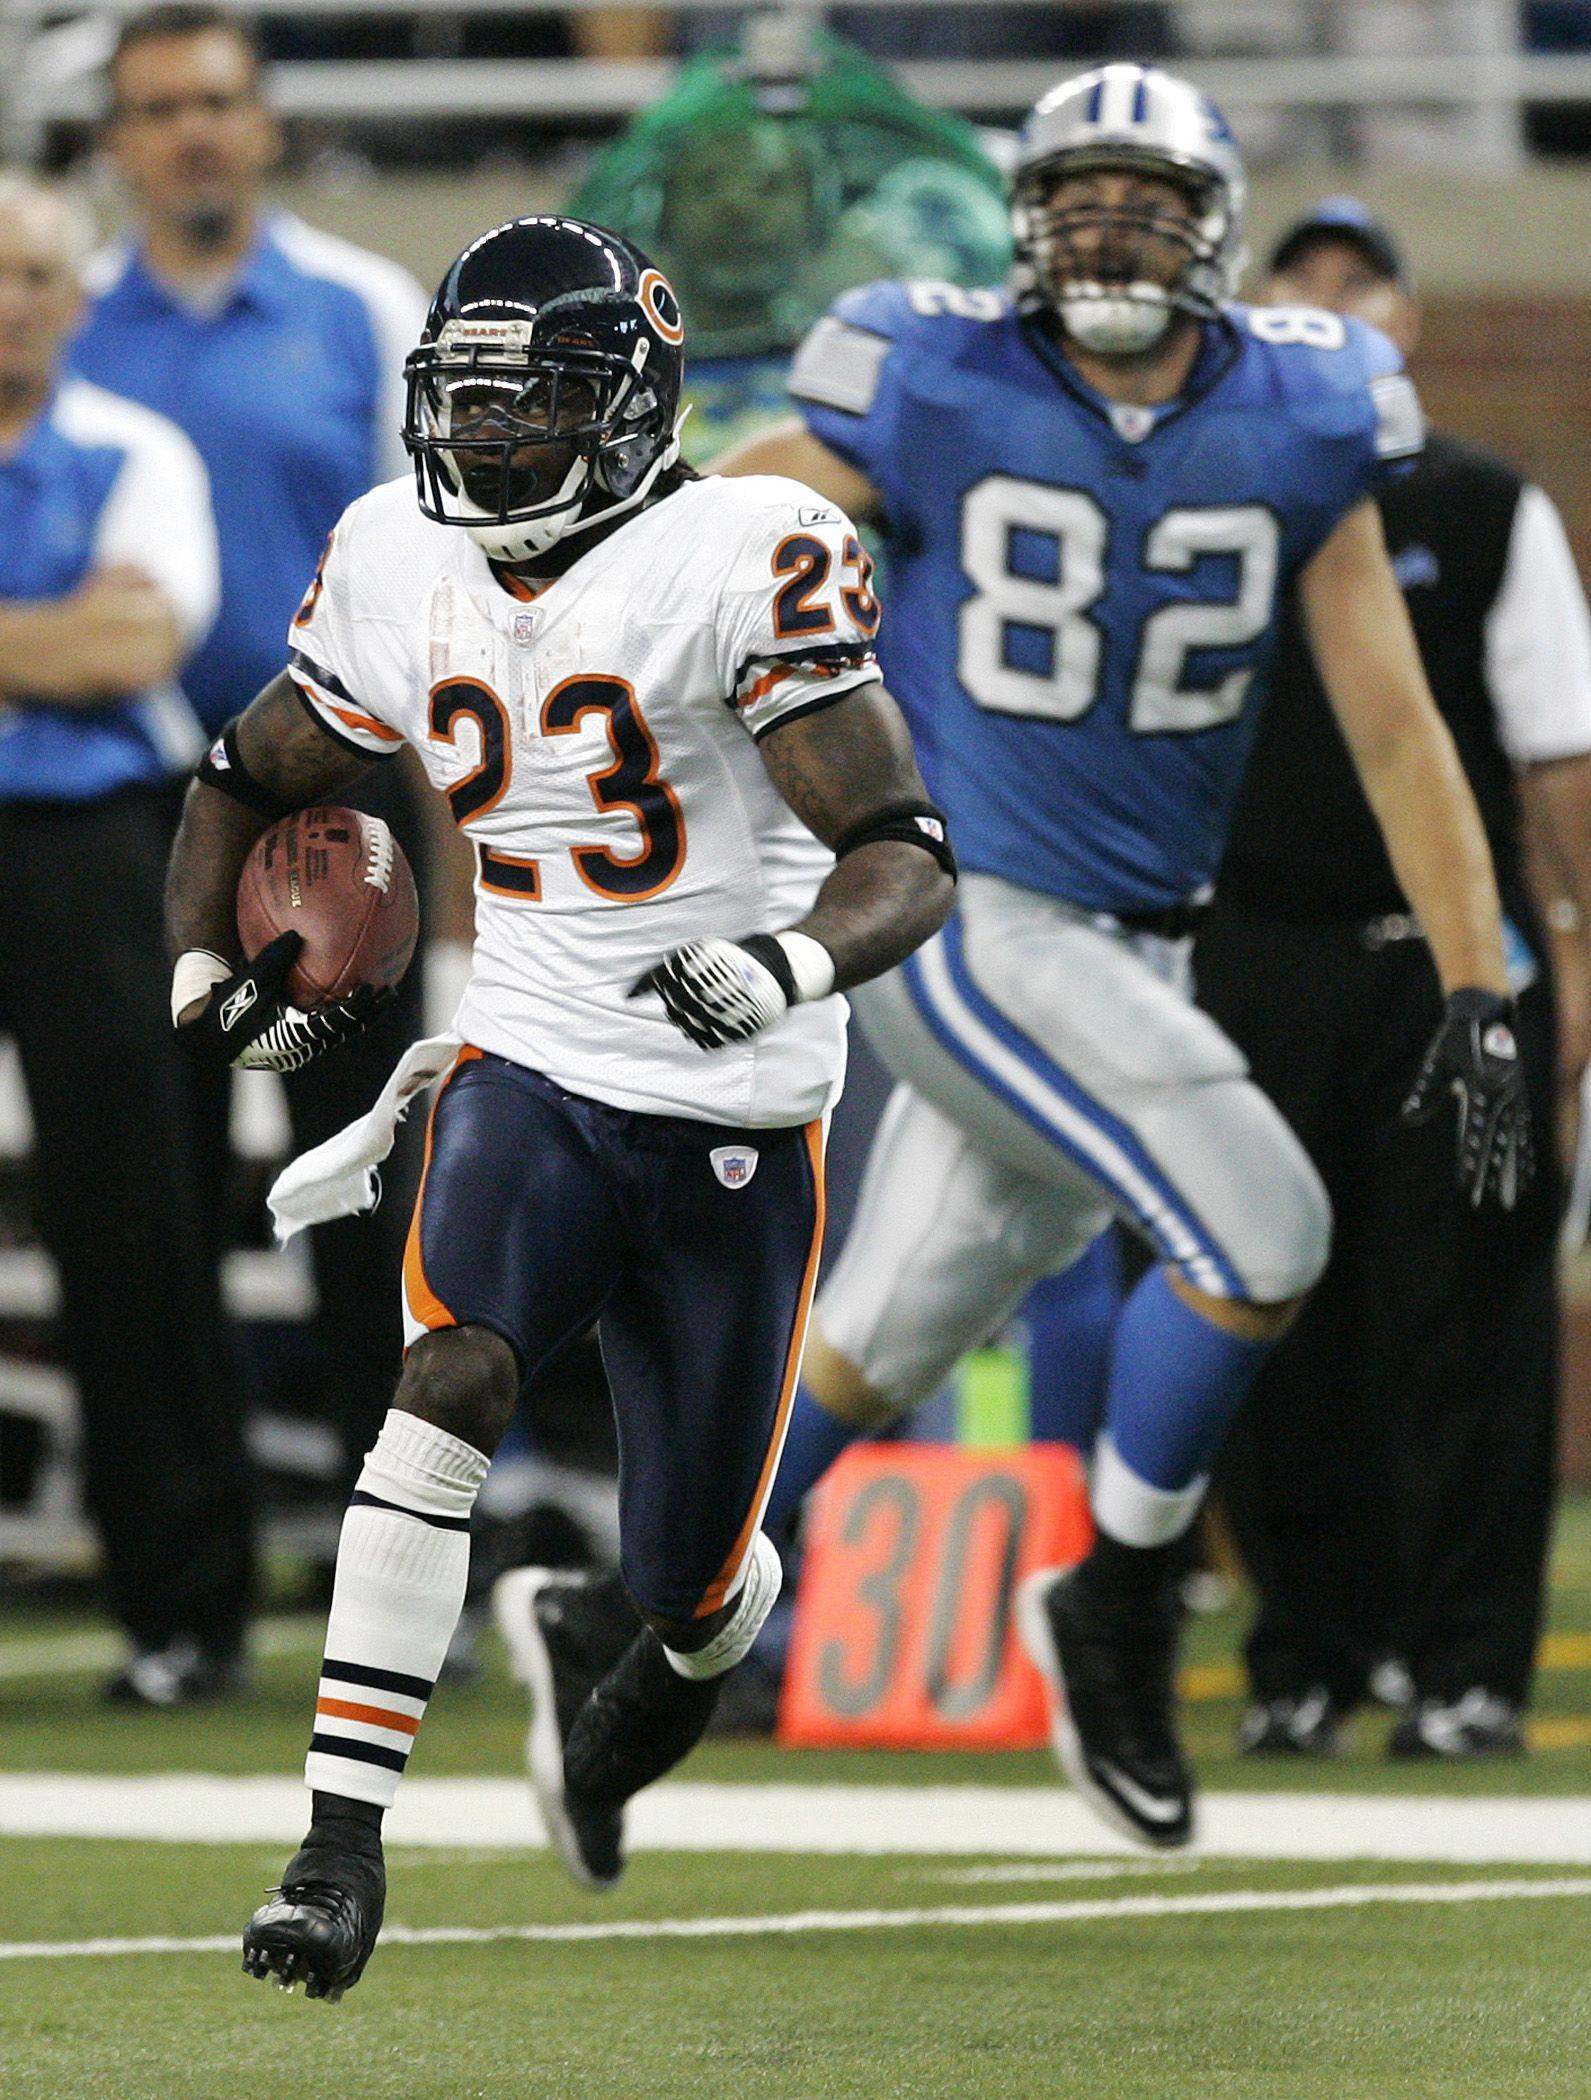 No. 8: Devin Hester returns a kickoff for a 97-yard touchdown against the Detroit Lions in the fourth quarter against the Lions on Sept. 30, 2007.